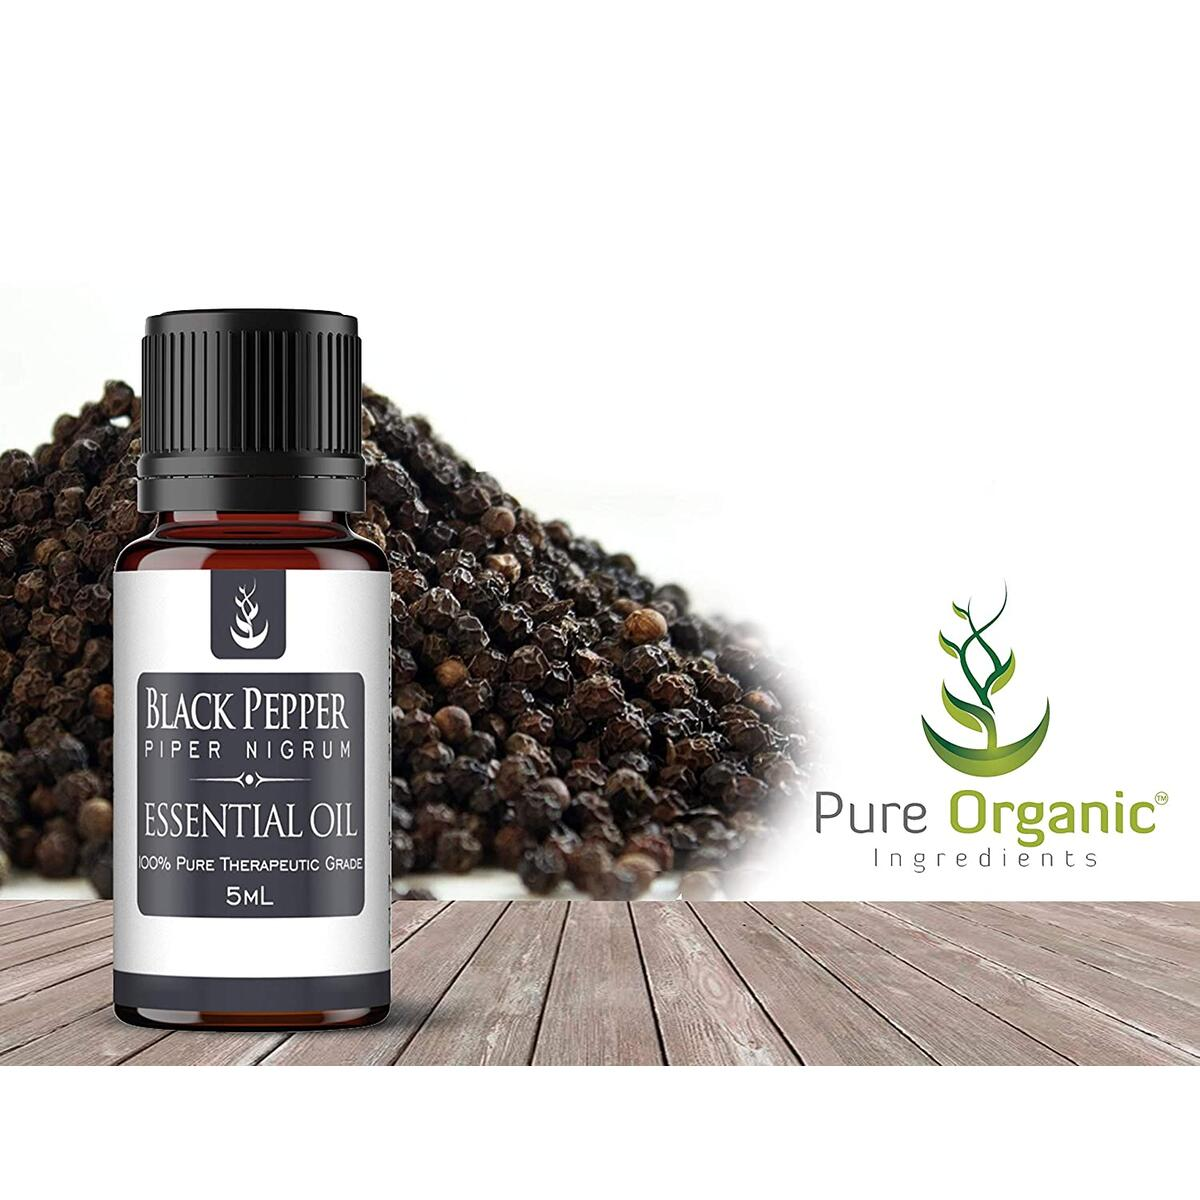 Black Pepper Essential Oil (5 ml) by Pure Organic Ingredients, Convenient Dropper Cap Bottle, Cooking Spice, Aids with Anxiety, Spicy Aroma